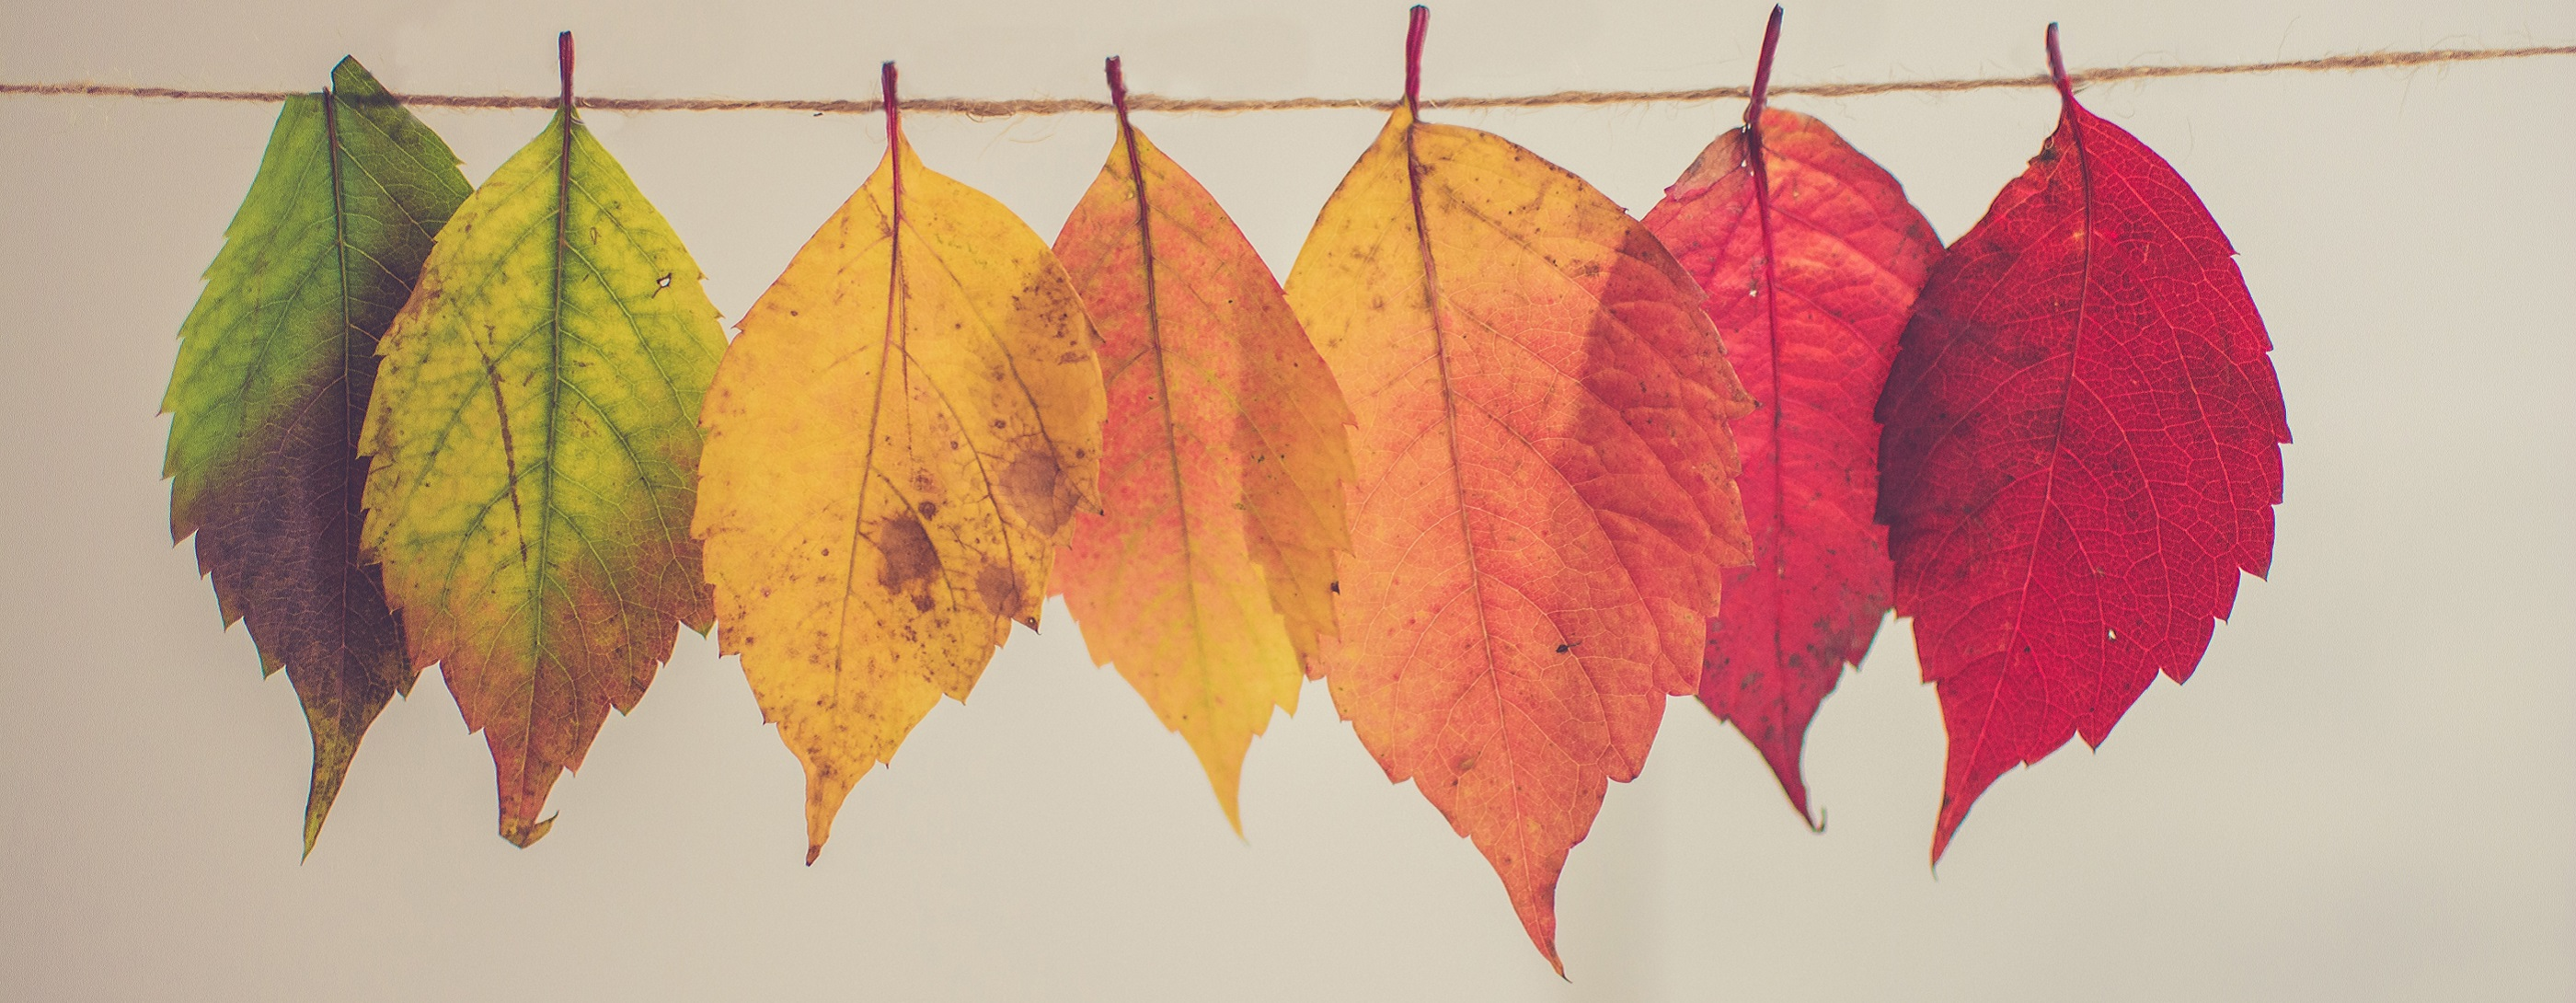 7 arts activities to get you out and about this autumn